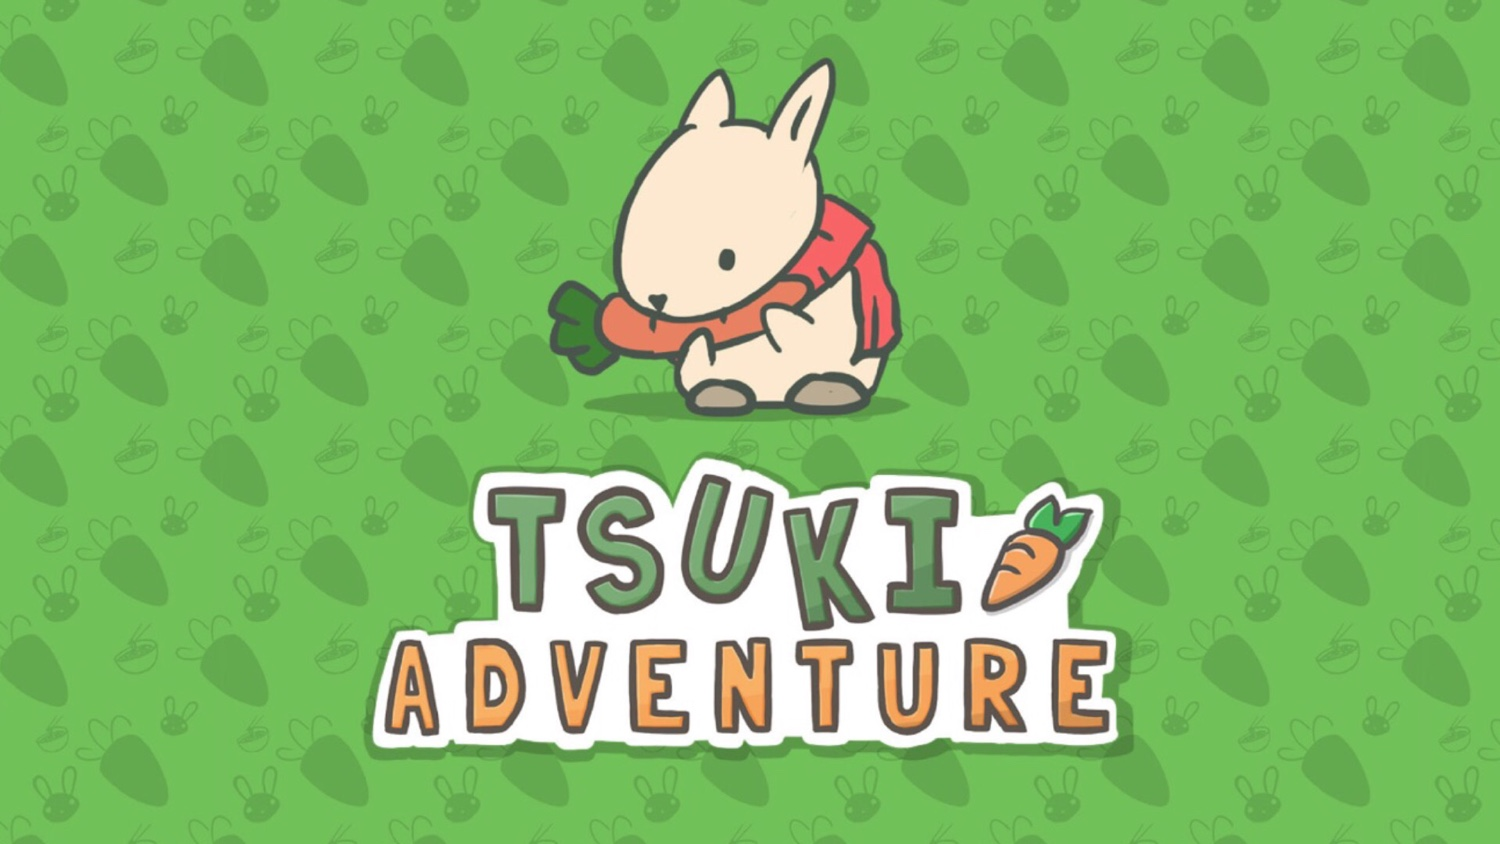 Tsuki Adventure: Walkthrough Guide, Tips and Tricks